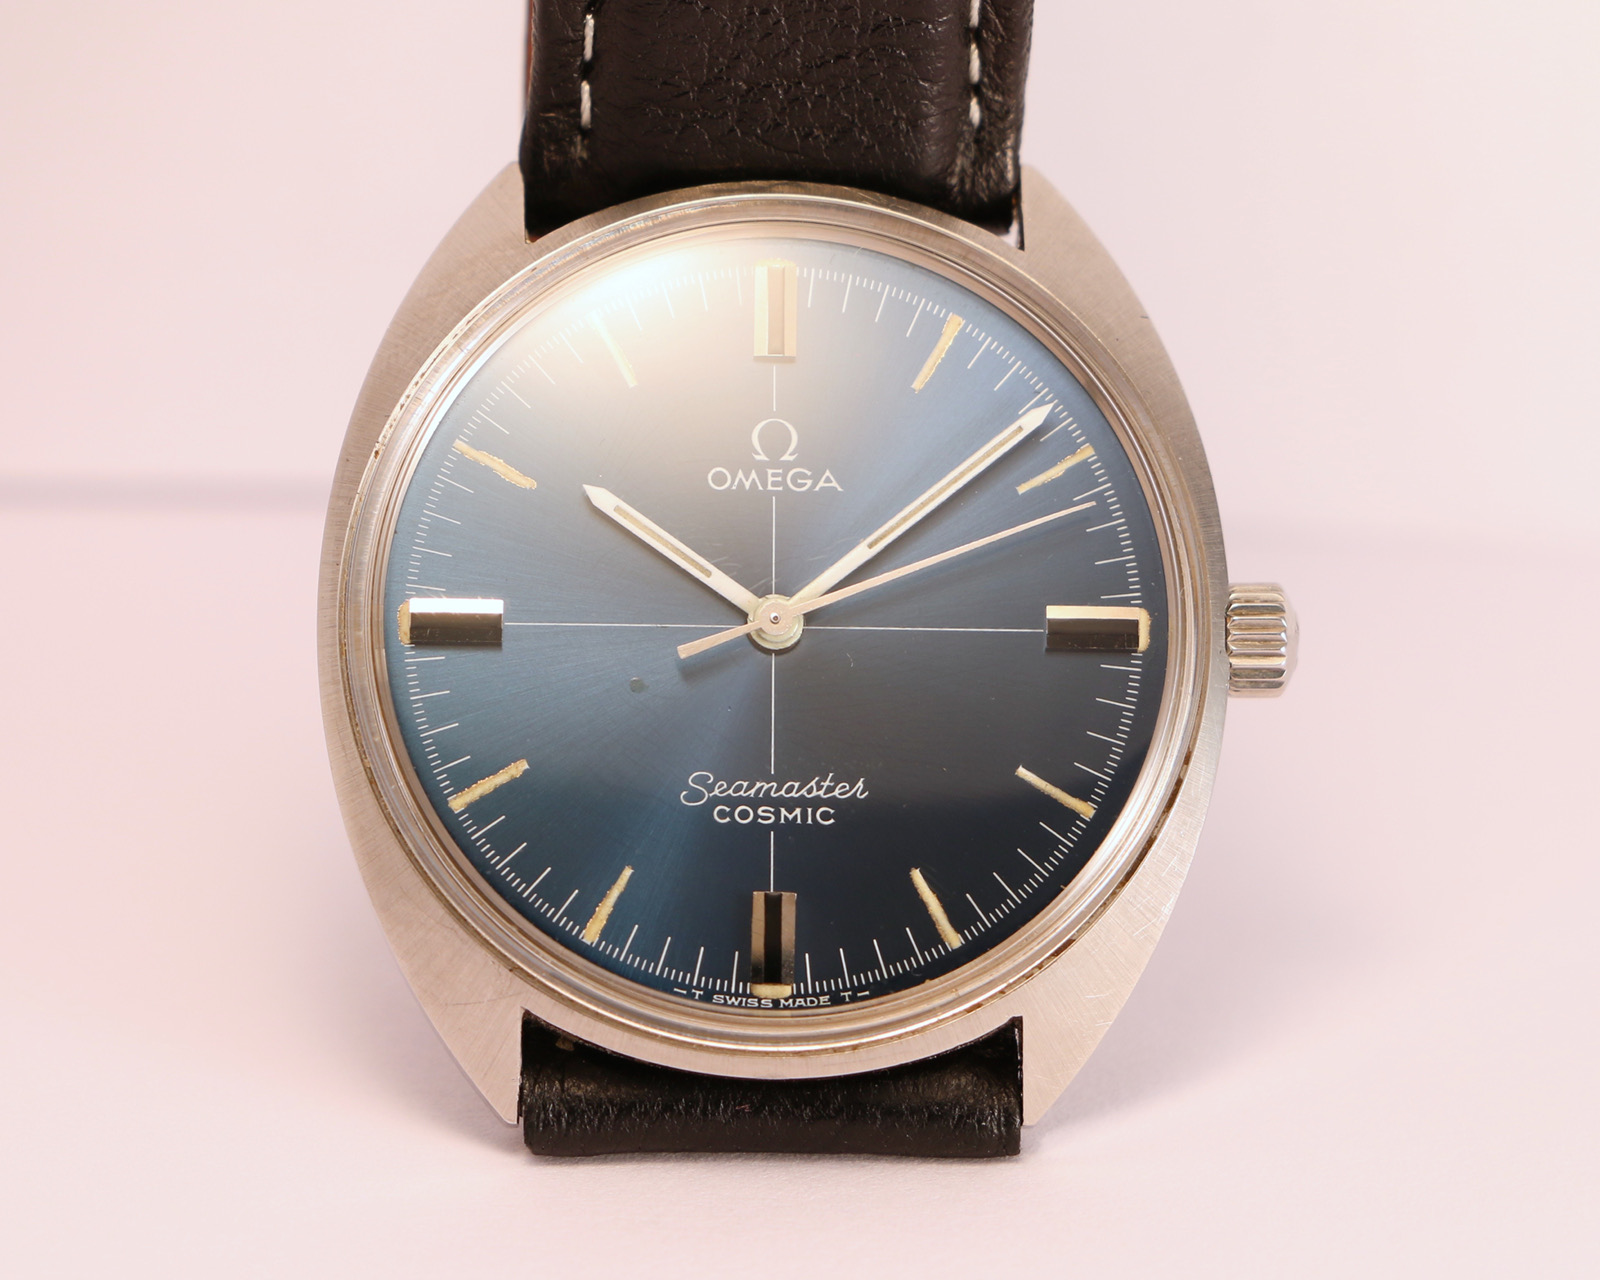 Omega Seamaster Cosmic Blue Dial Cross Hair Brussels Vintage Watches